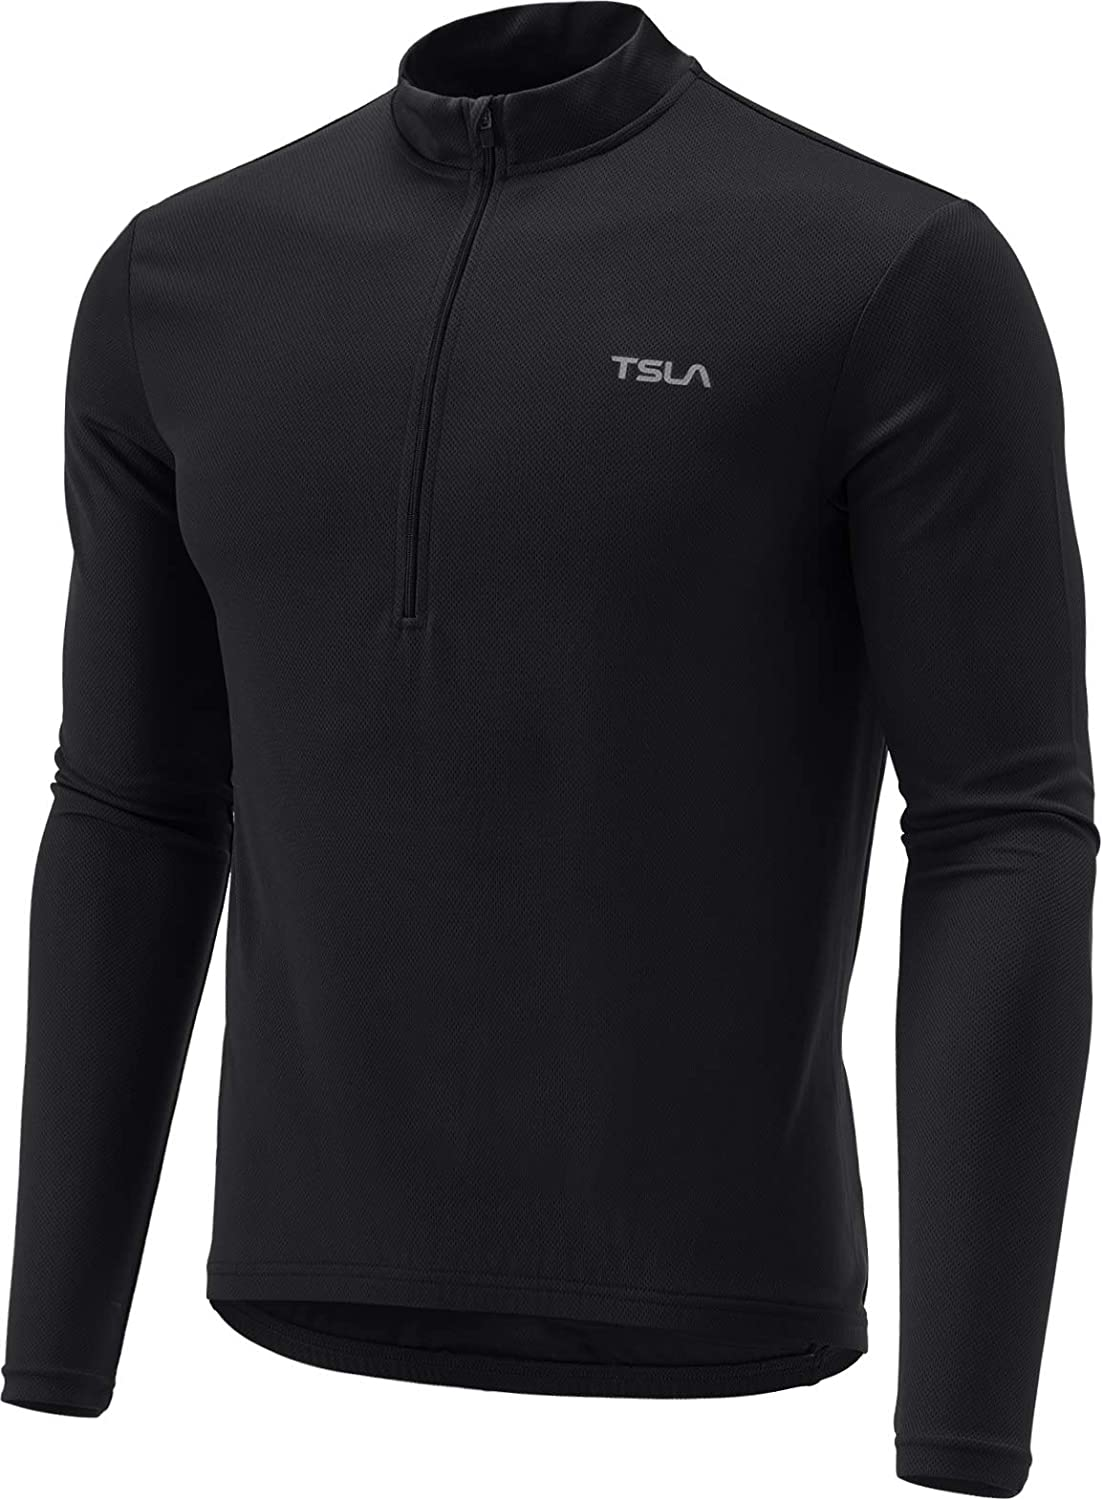 TSLA Mens Cycling Triathlon Jersey Bike Breathable Reflective Quick Dry Short /& Long Sleeve Biking Shirt MCT01 MCT21